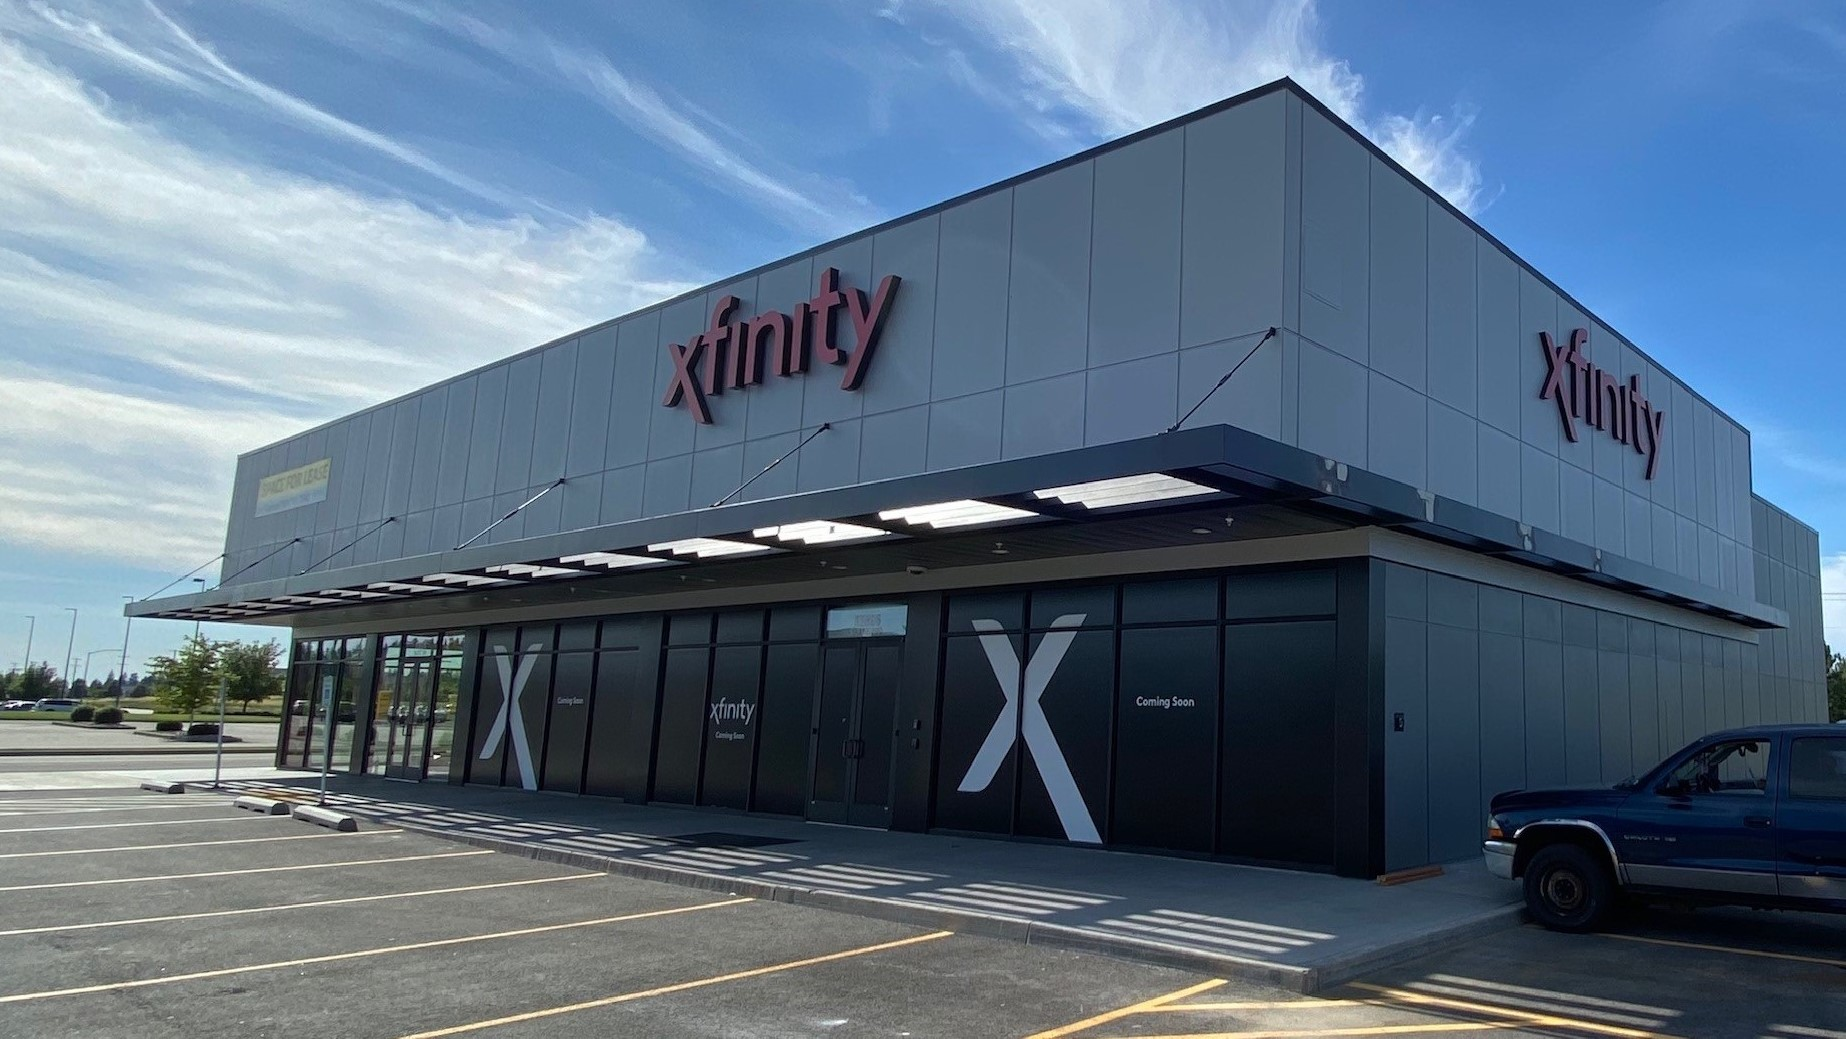 The new Xfinity store Spokane Valley